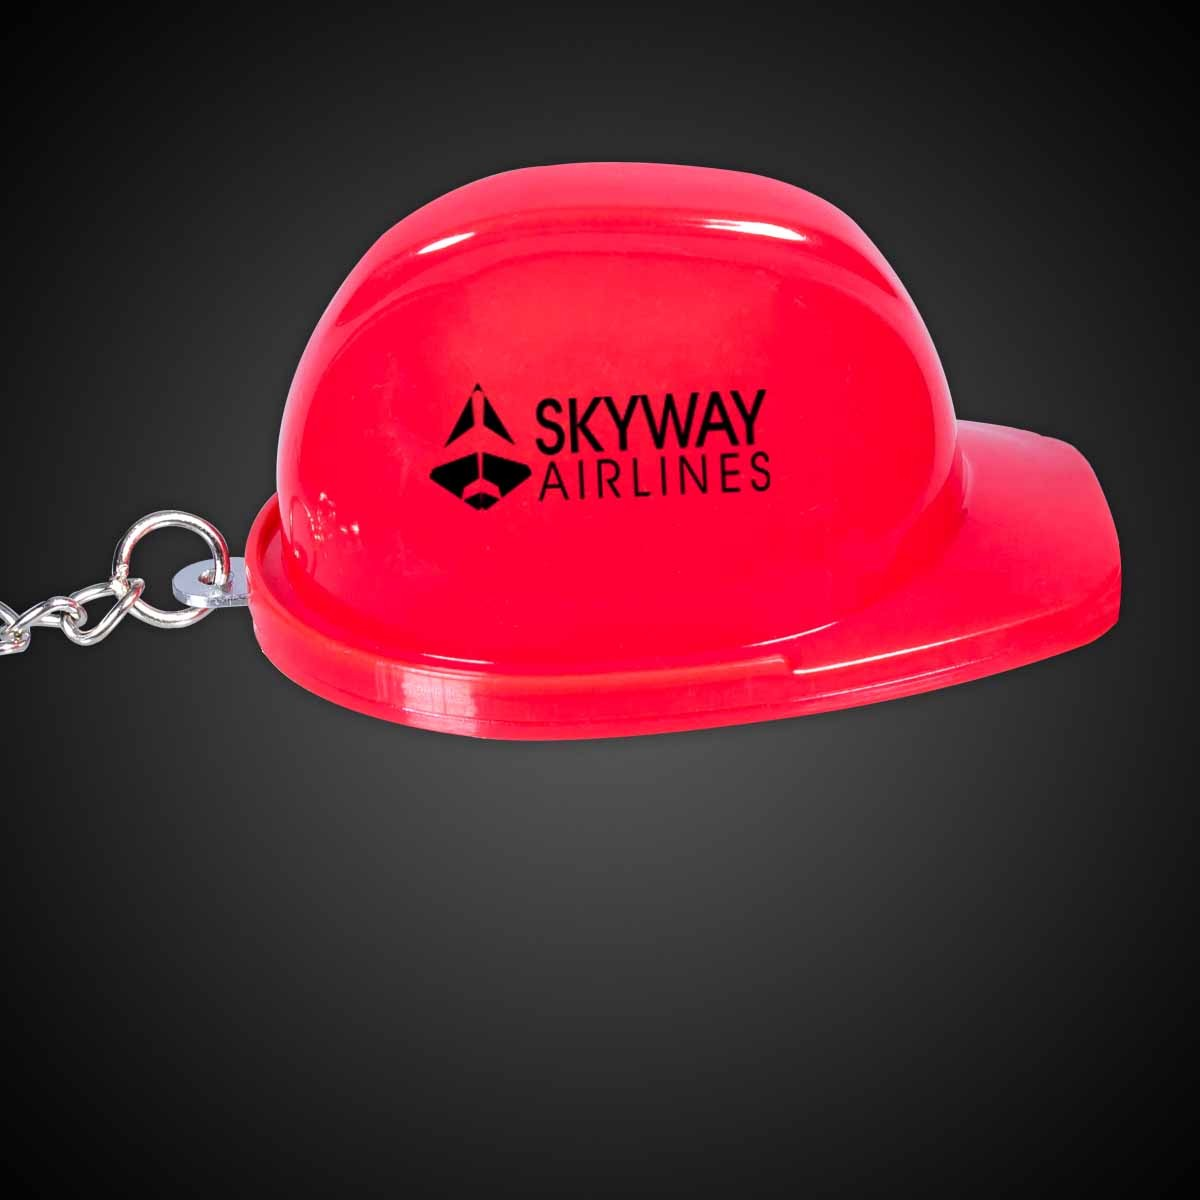 Red Plastic Construction Hat Bottle Opener Key Chains